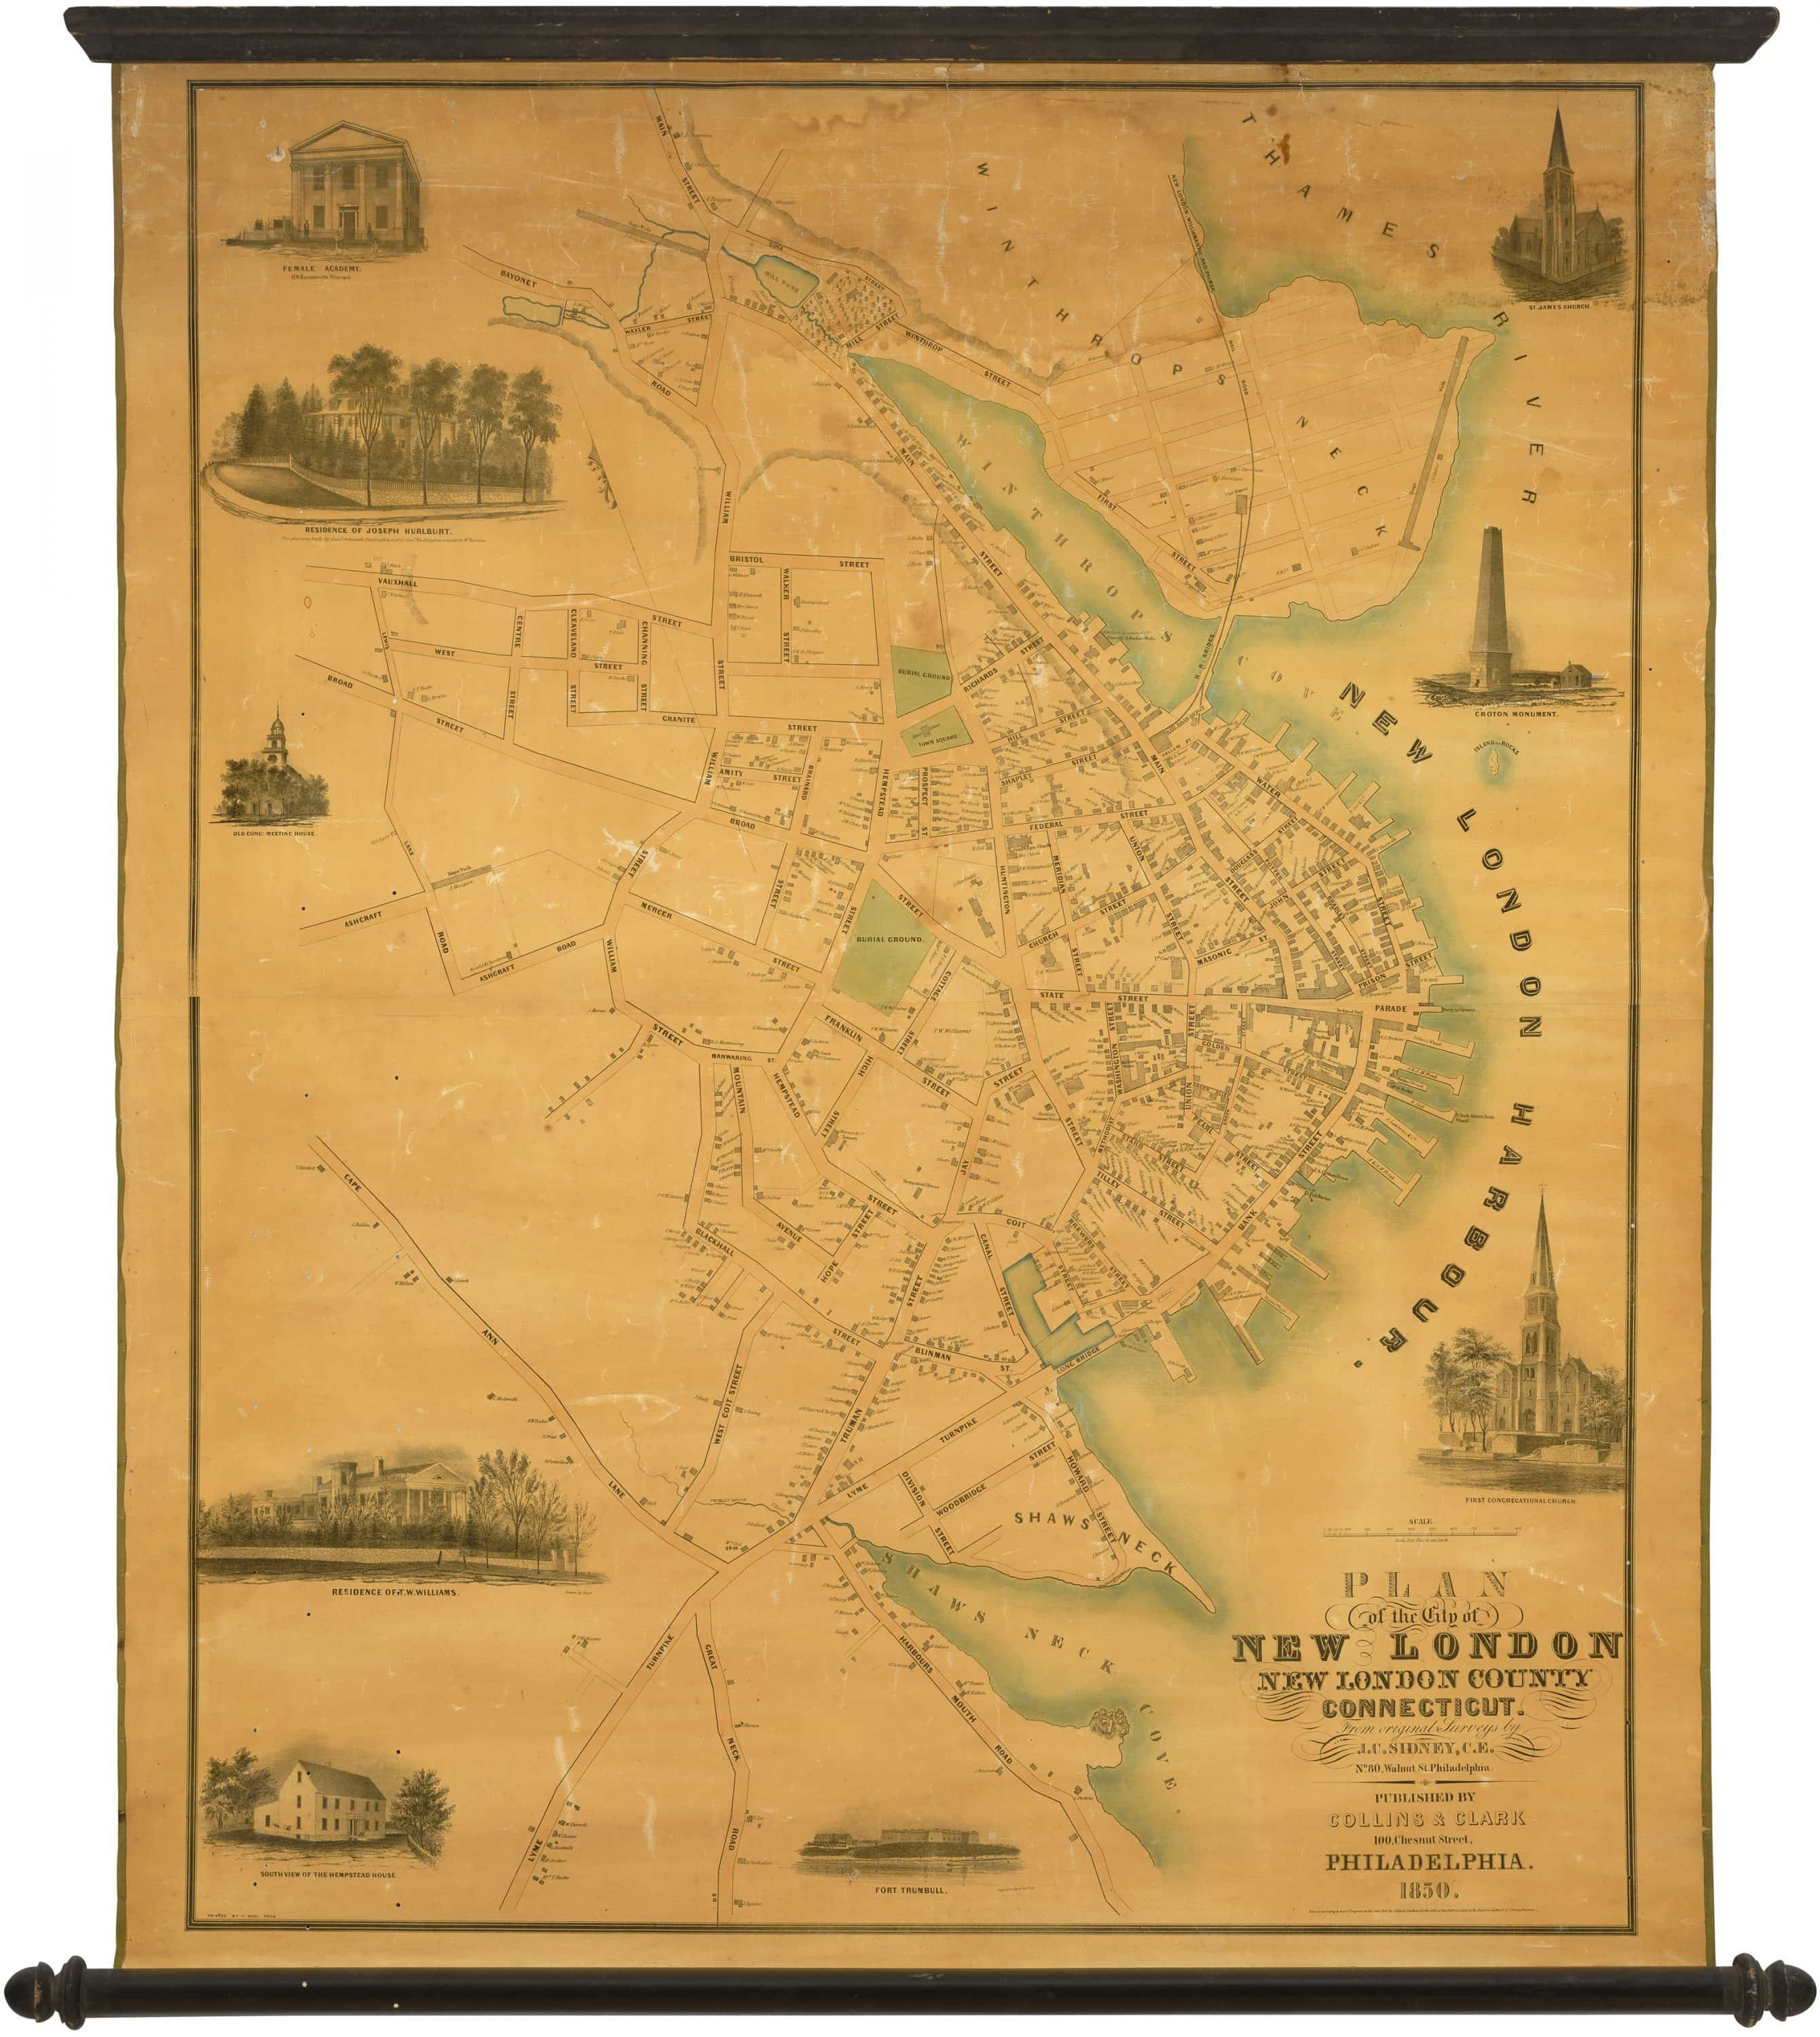 1850 Wall Map Of New London Connecticut Rare Antique Maps